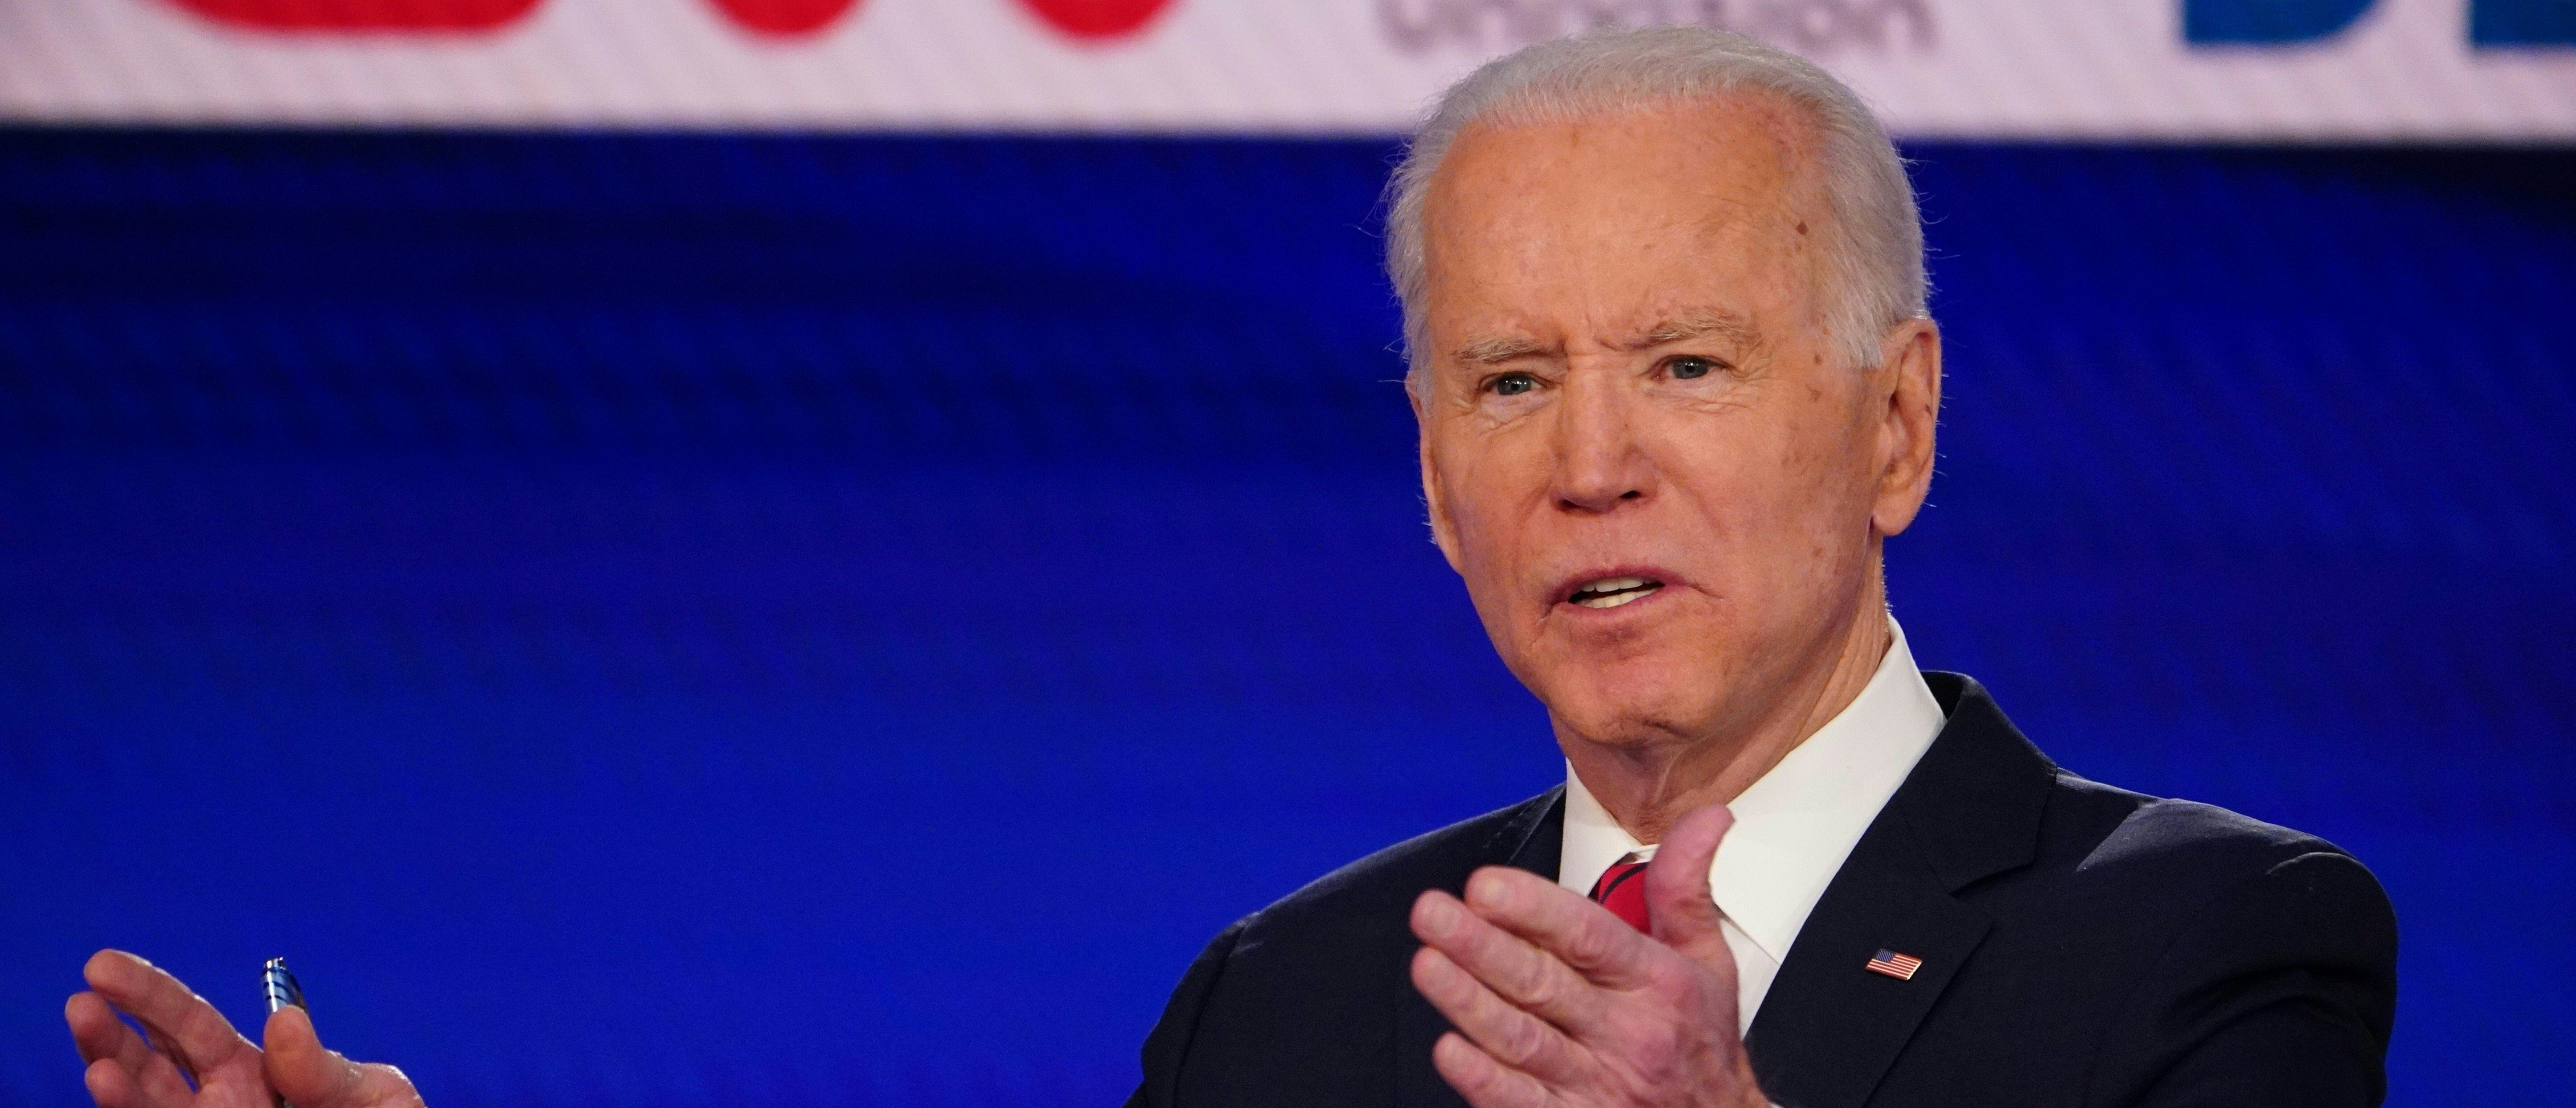 Democratic presidential hopeful former US vice president Joe Biden makes a point as he and Senator Bernie Sanders take part in the 11th Democratic Party 2020 presidential debate in a CNN Washington Bureau studio in Washington, DC on March 15, 2020. (Photo by MANDEL NGAN/AFP via Getty Images)